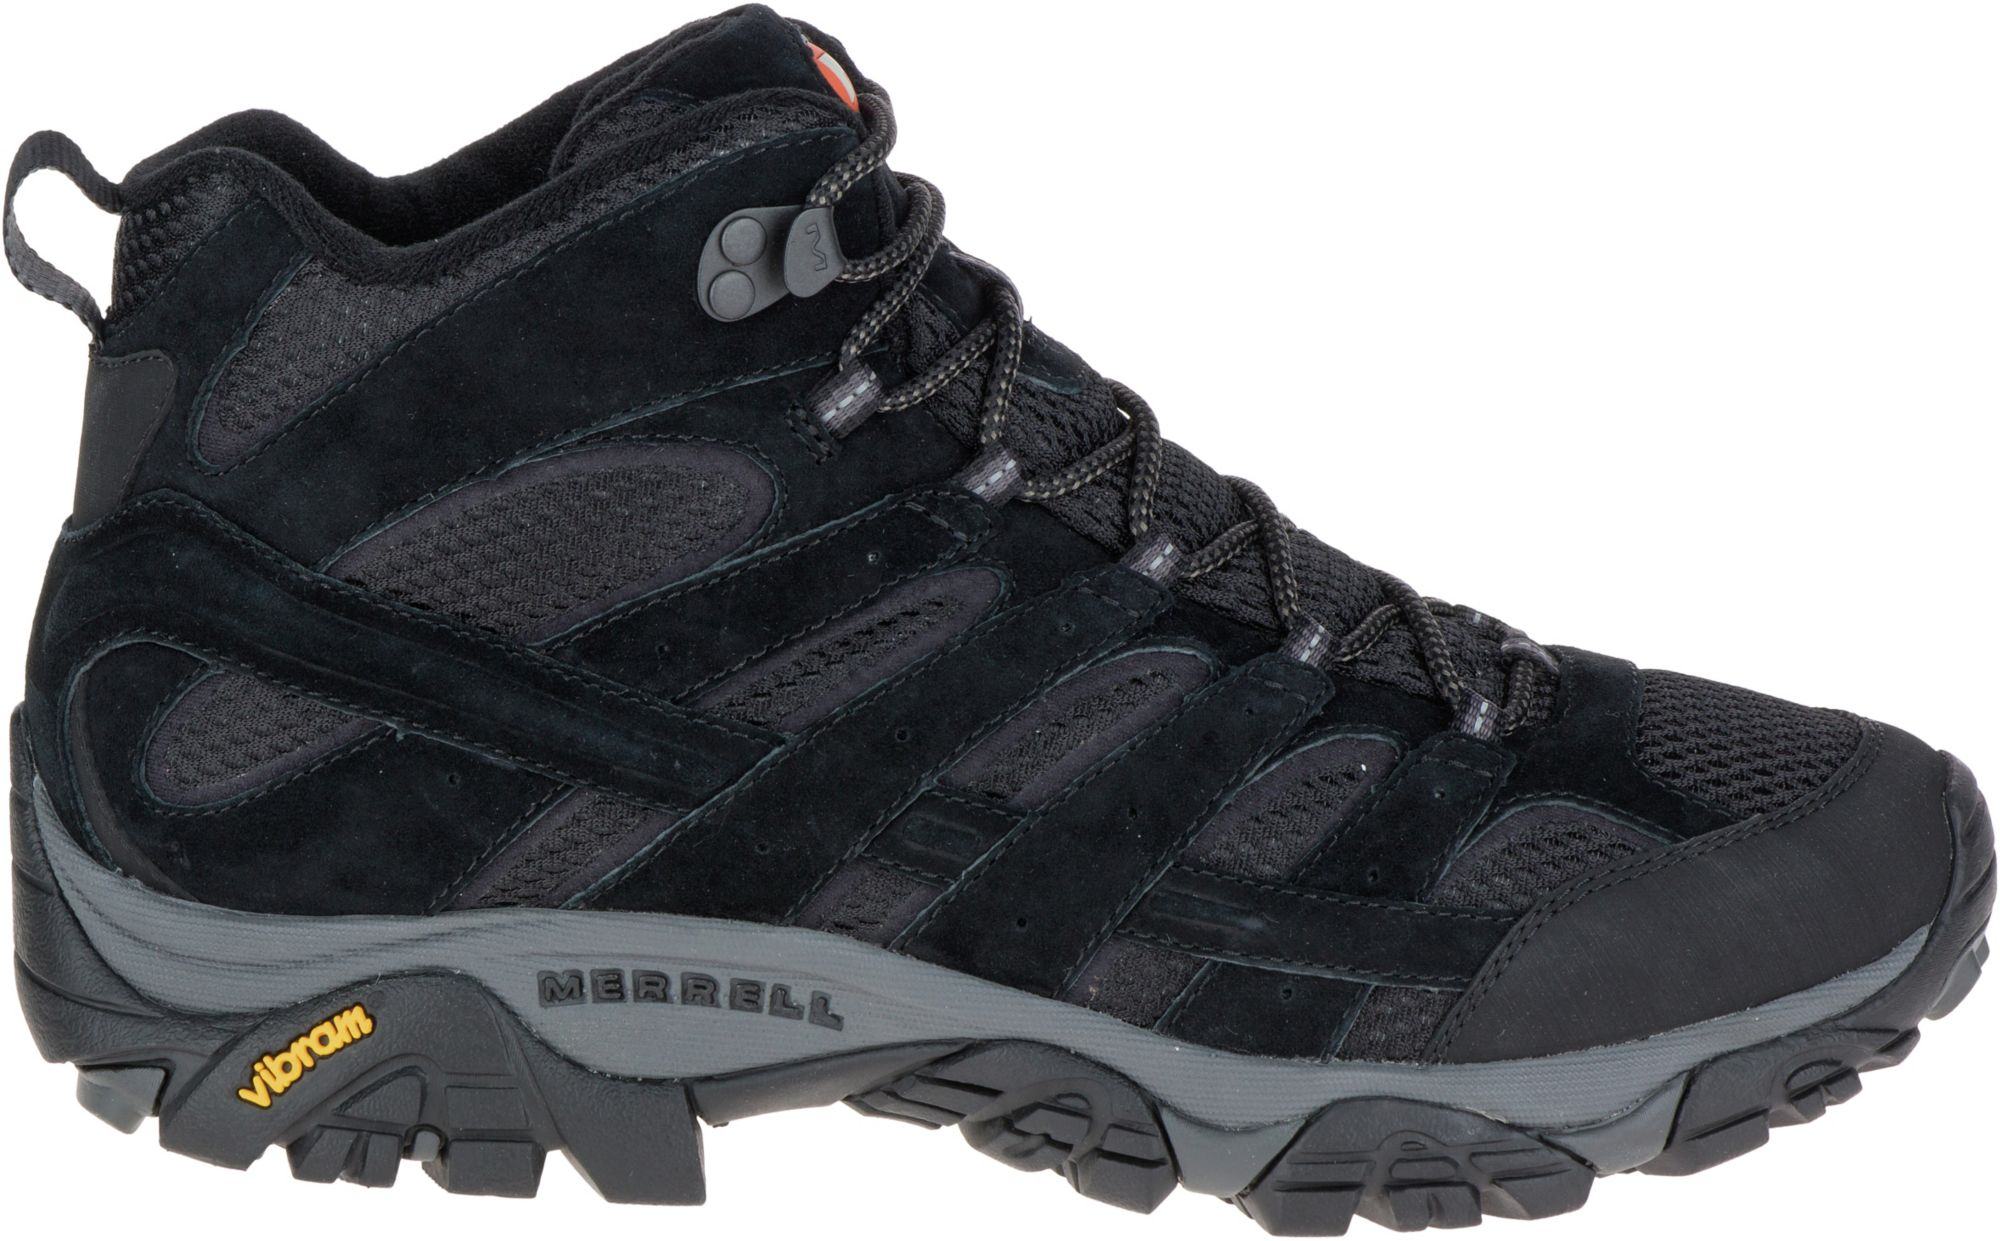 Merrell Hiking Boots & Shoes | DICK's Sporting Goods